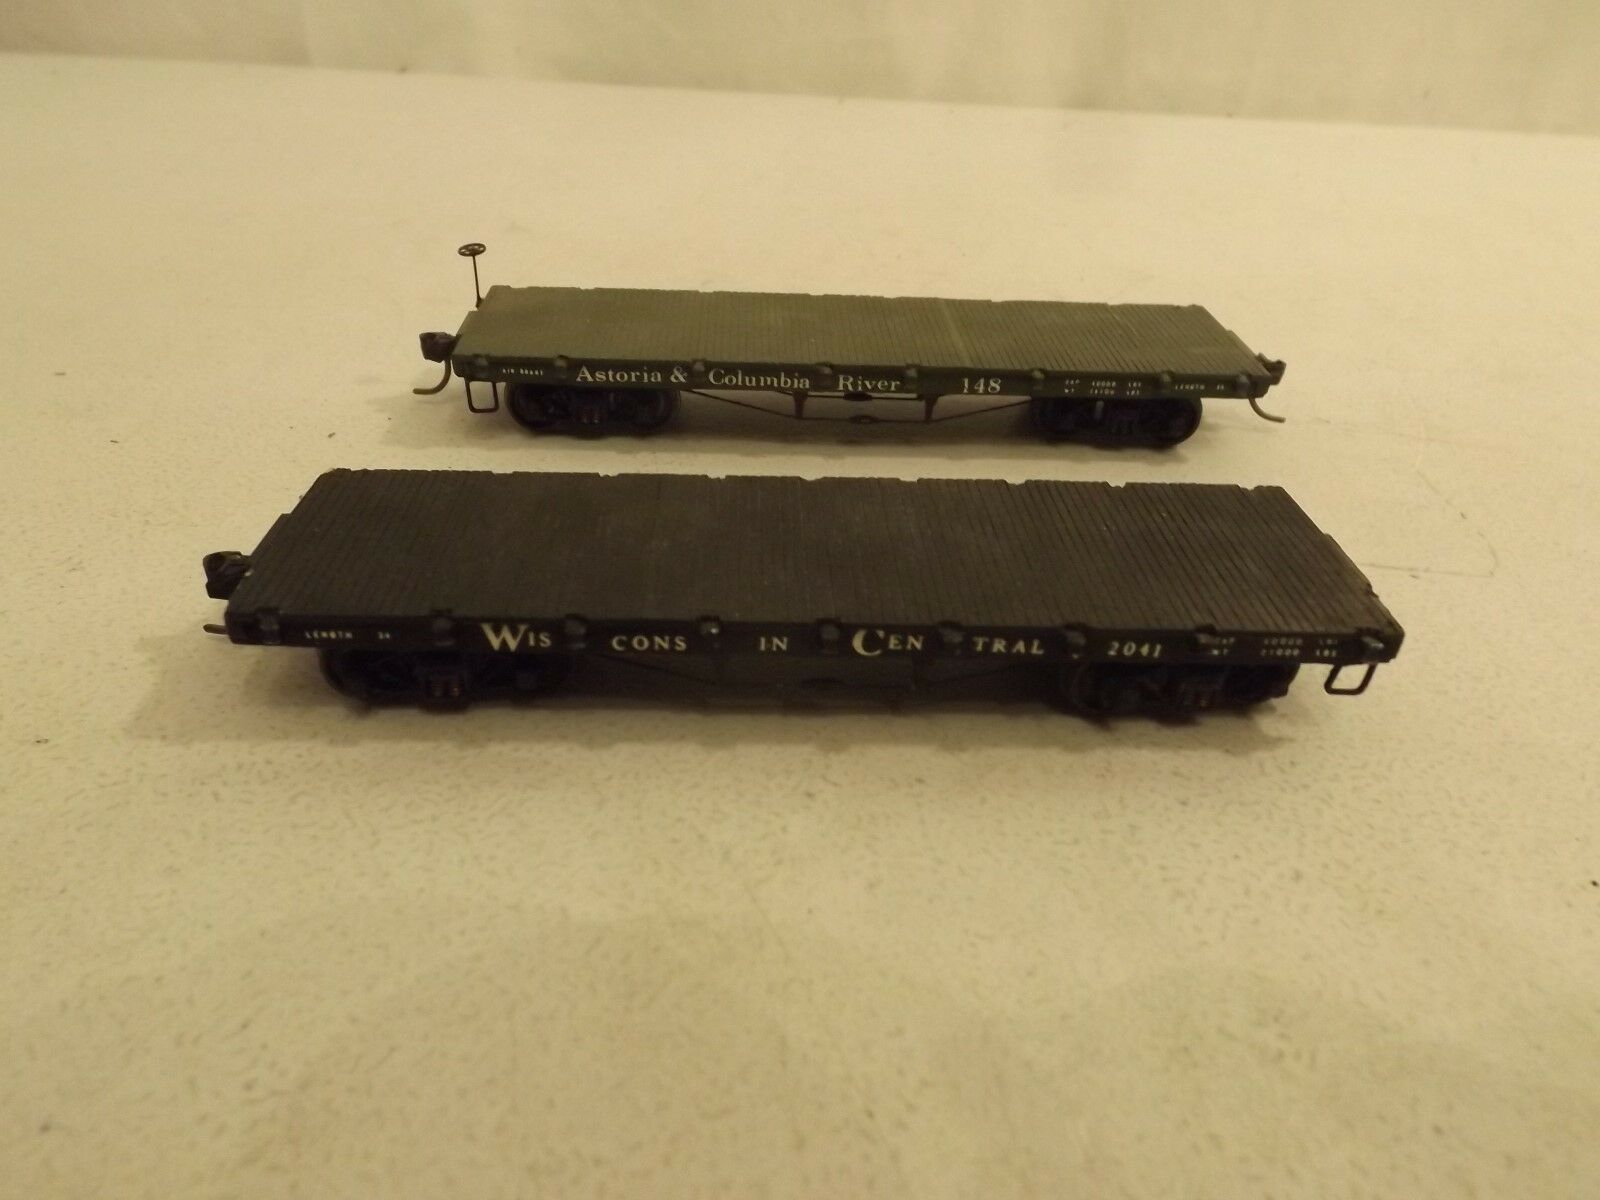 (2) HO LaBelle flat cars origbx - Wisconsin Central & Astoria and colgolddo Rivr